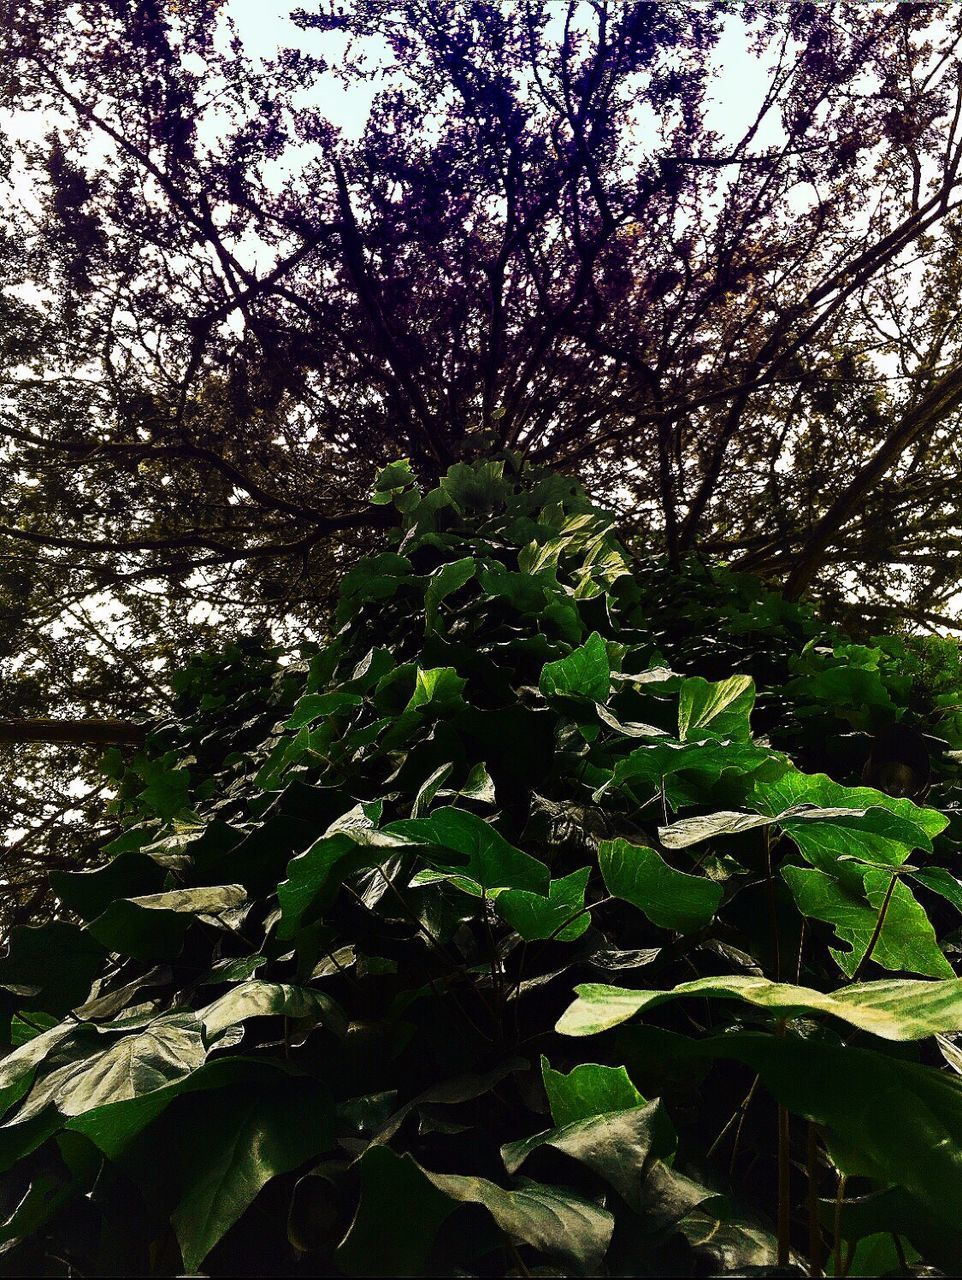 growth, tree, nature, beauty in nature, green color, plant, leaf, botany, branch, no people, tranquility, fragility, outdoors, day, freshness, low angle view, forest, flower, close-up